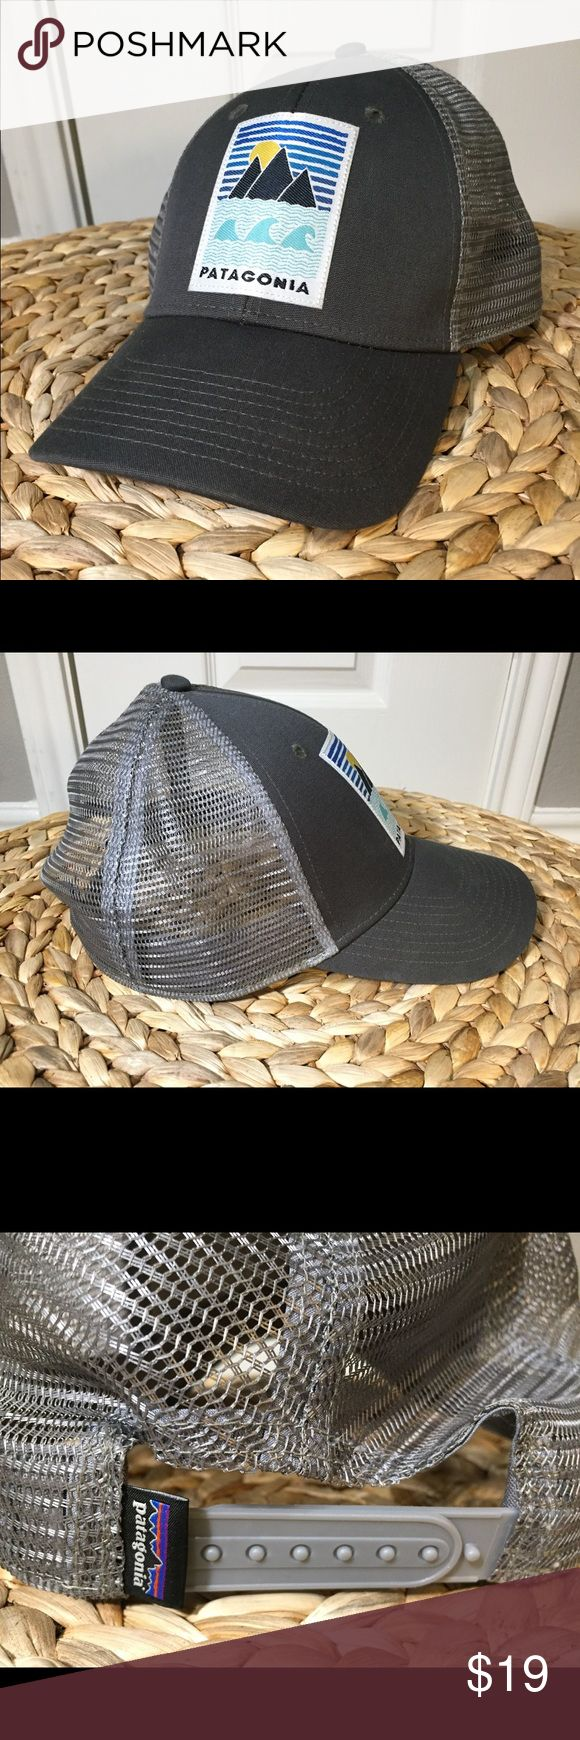 Patagonia SnapBack Hat Grey Patagonia brand SnapBack hat. Excellent condition - work twice. Patagonia Accessories Hats